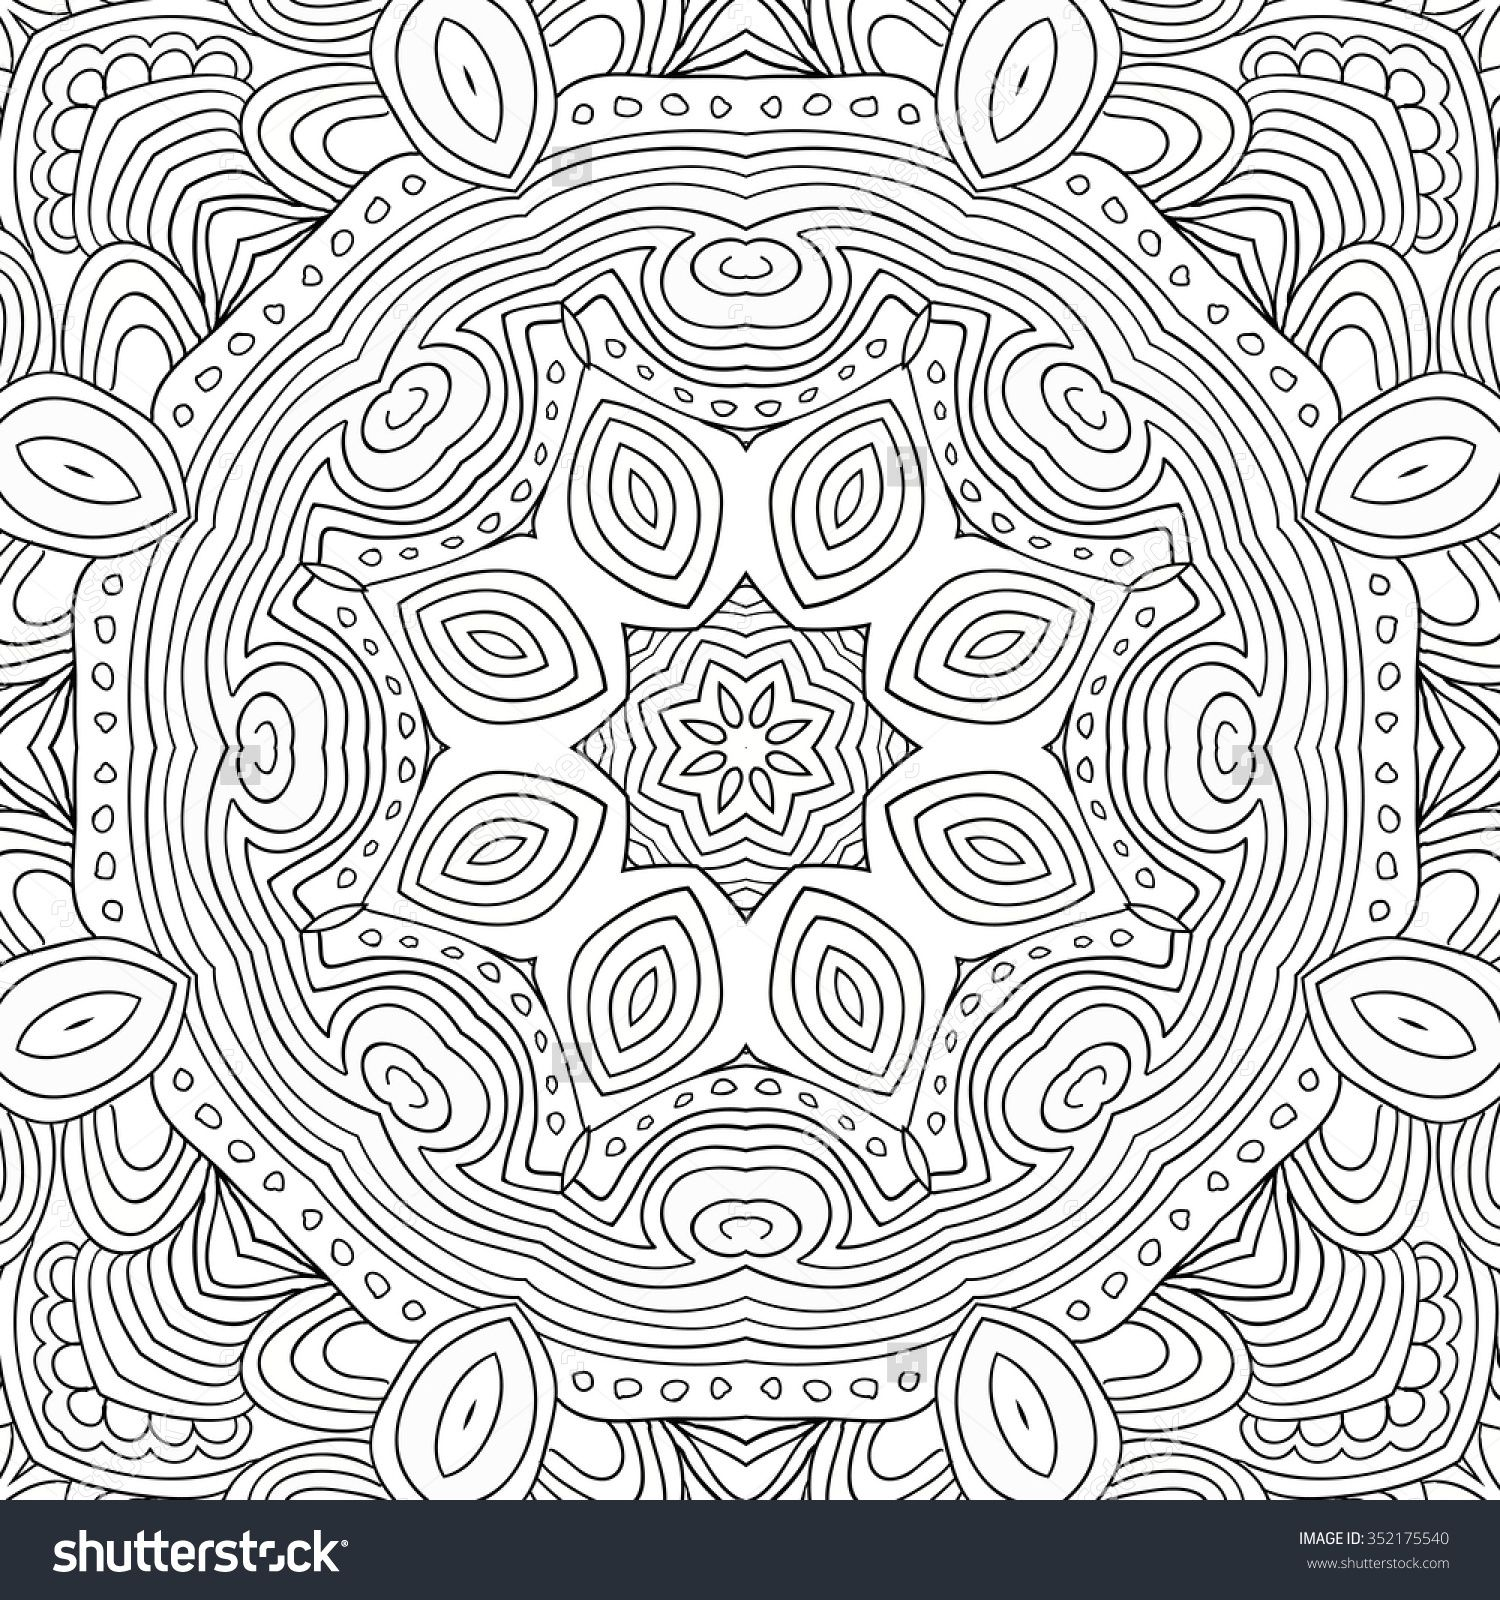 sacred geometry coloring pages - Google Search   Colouring   Pinterest